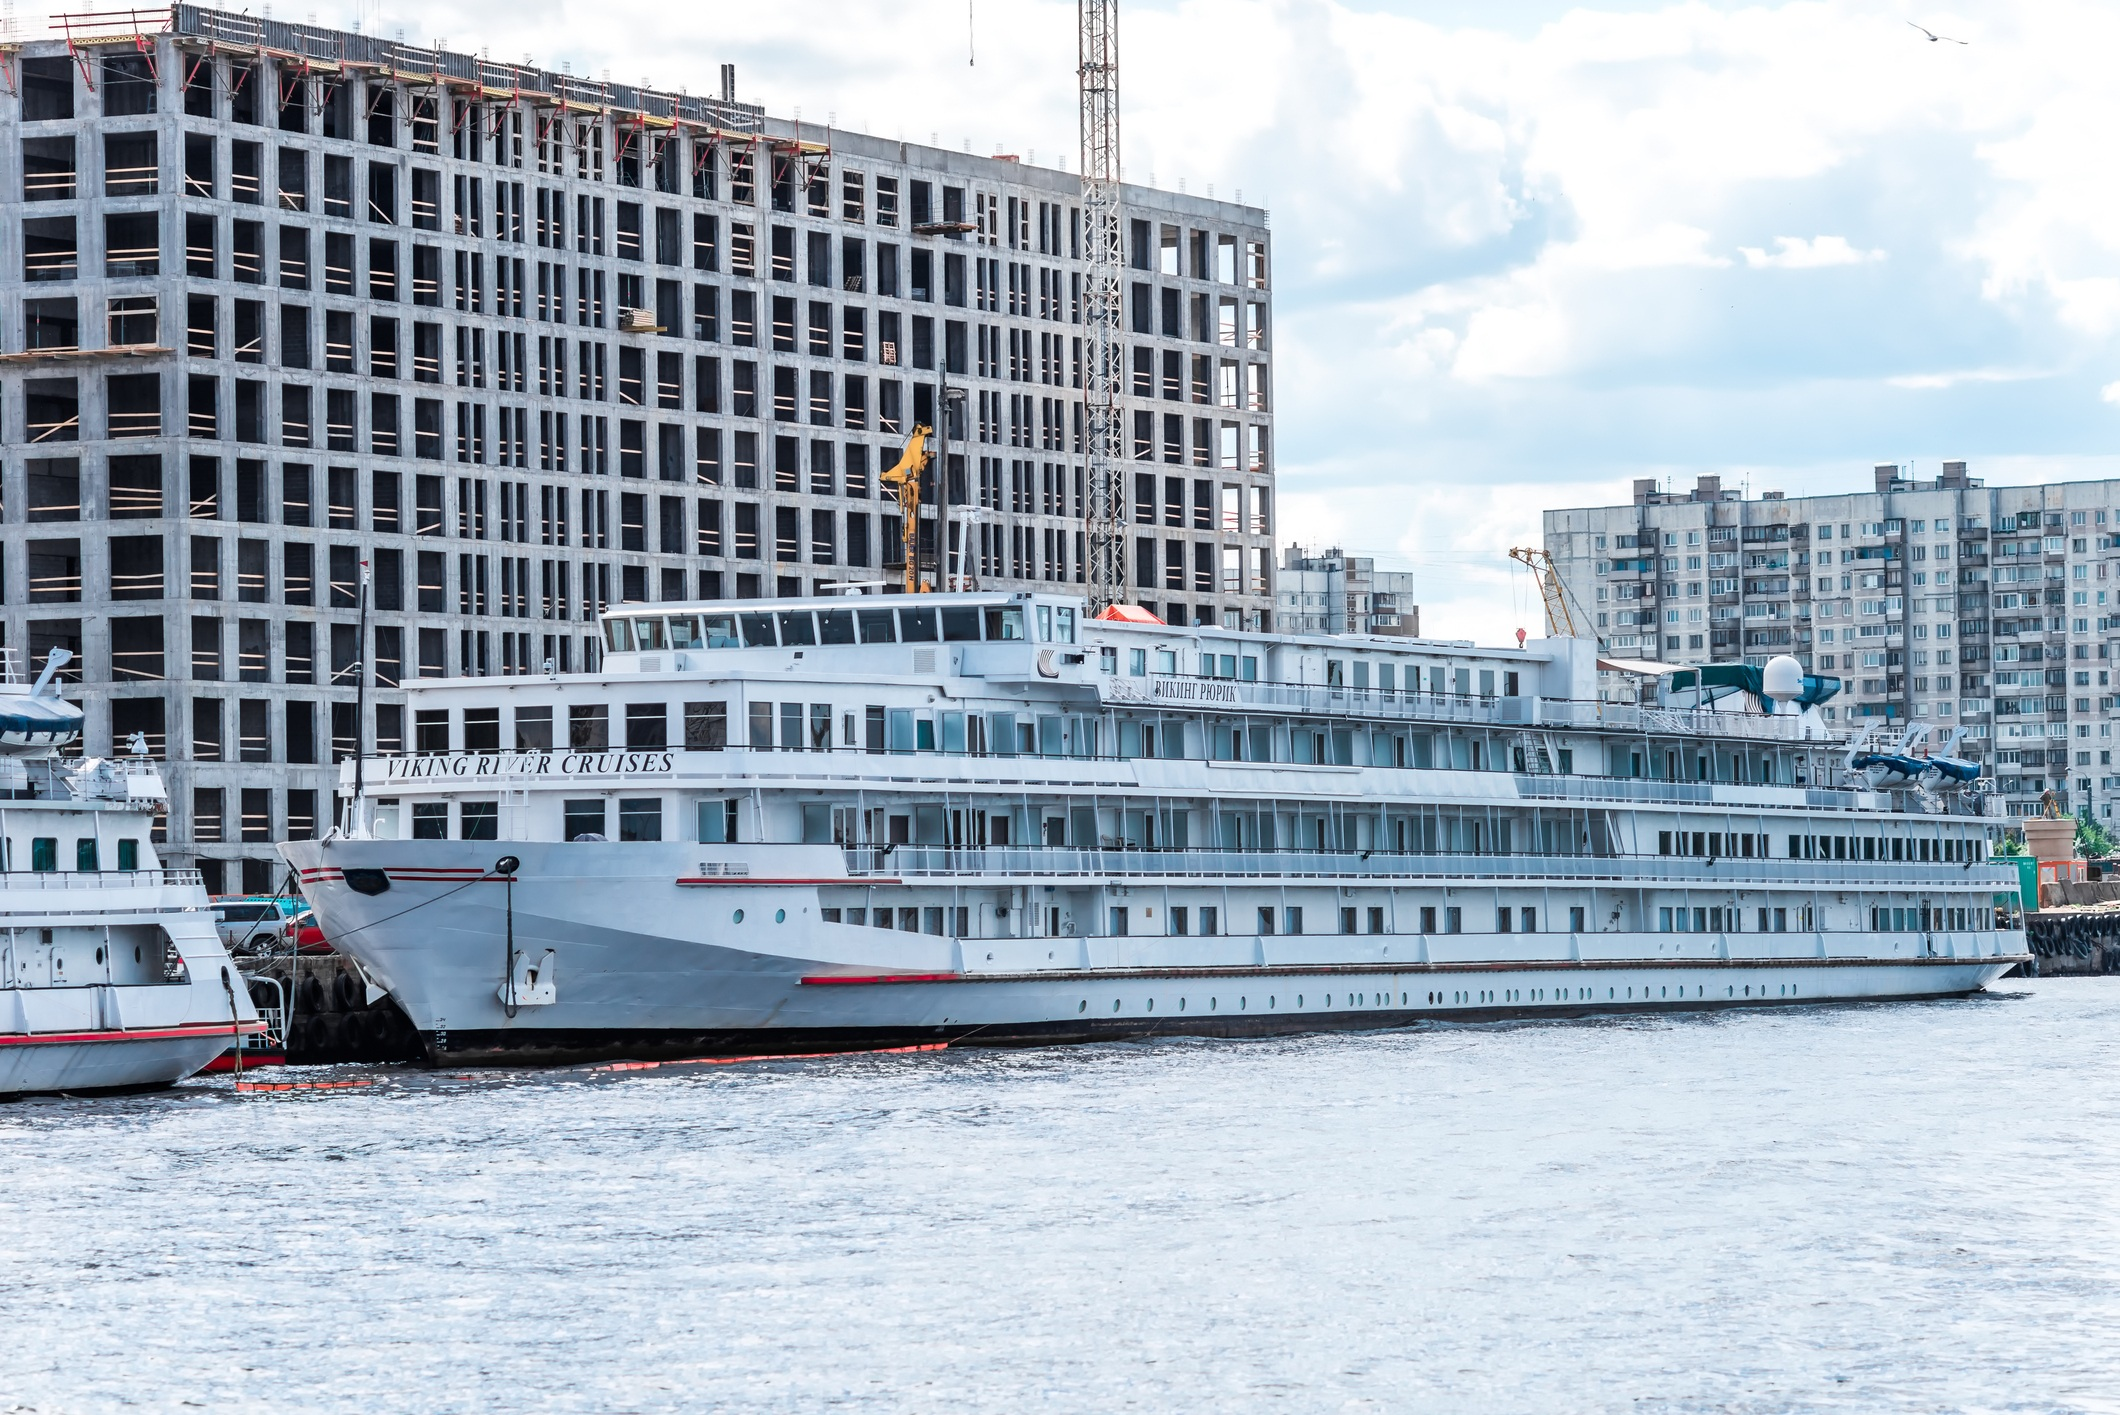 Viking river cruise lines ship